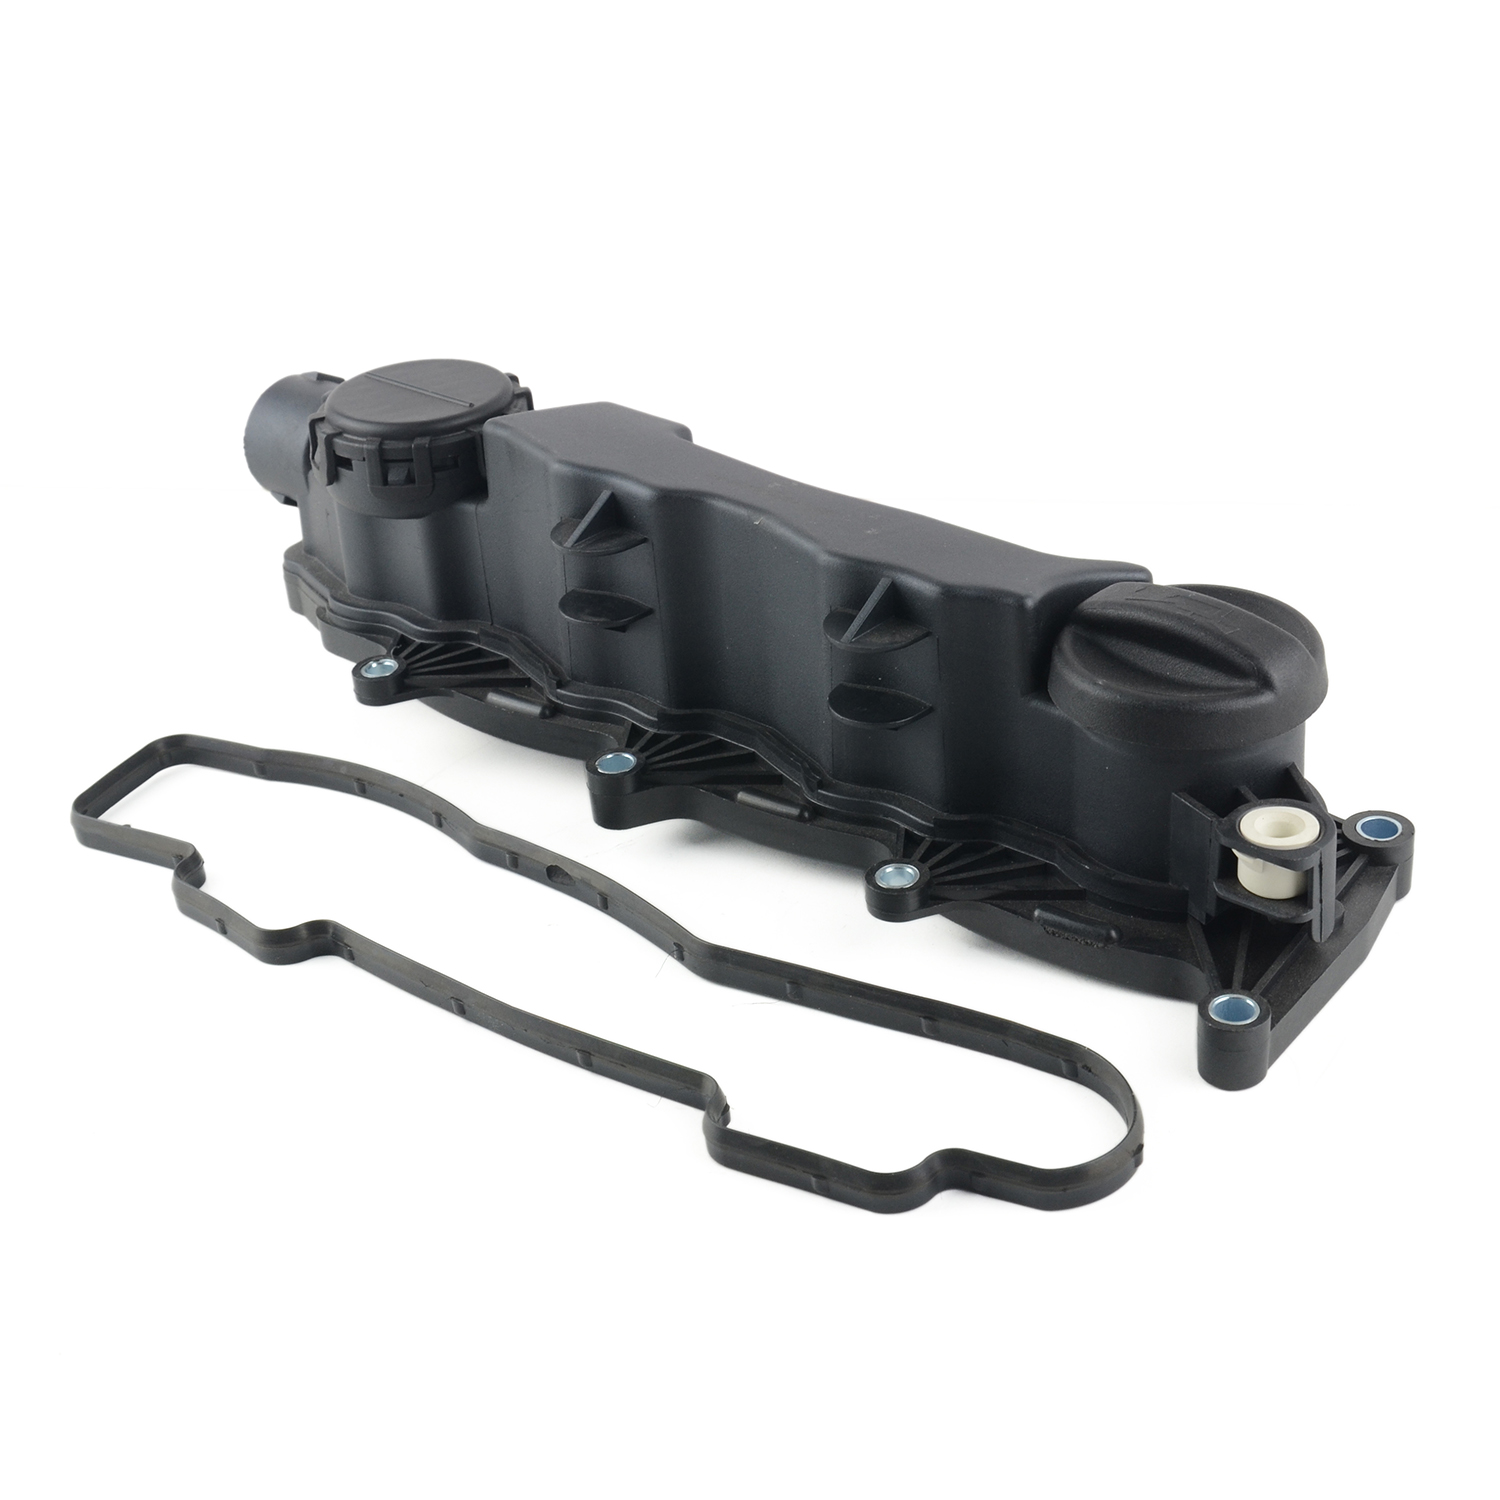 FIESTA MK5 ENGINE ROCKER VALVE COVER FOR FORD C-MAX FOCUS FUSION 1.6 TDCi